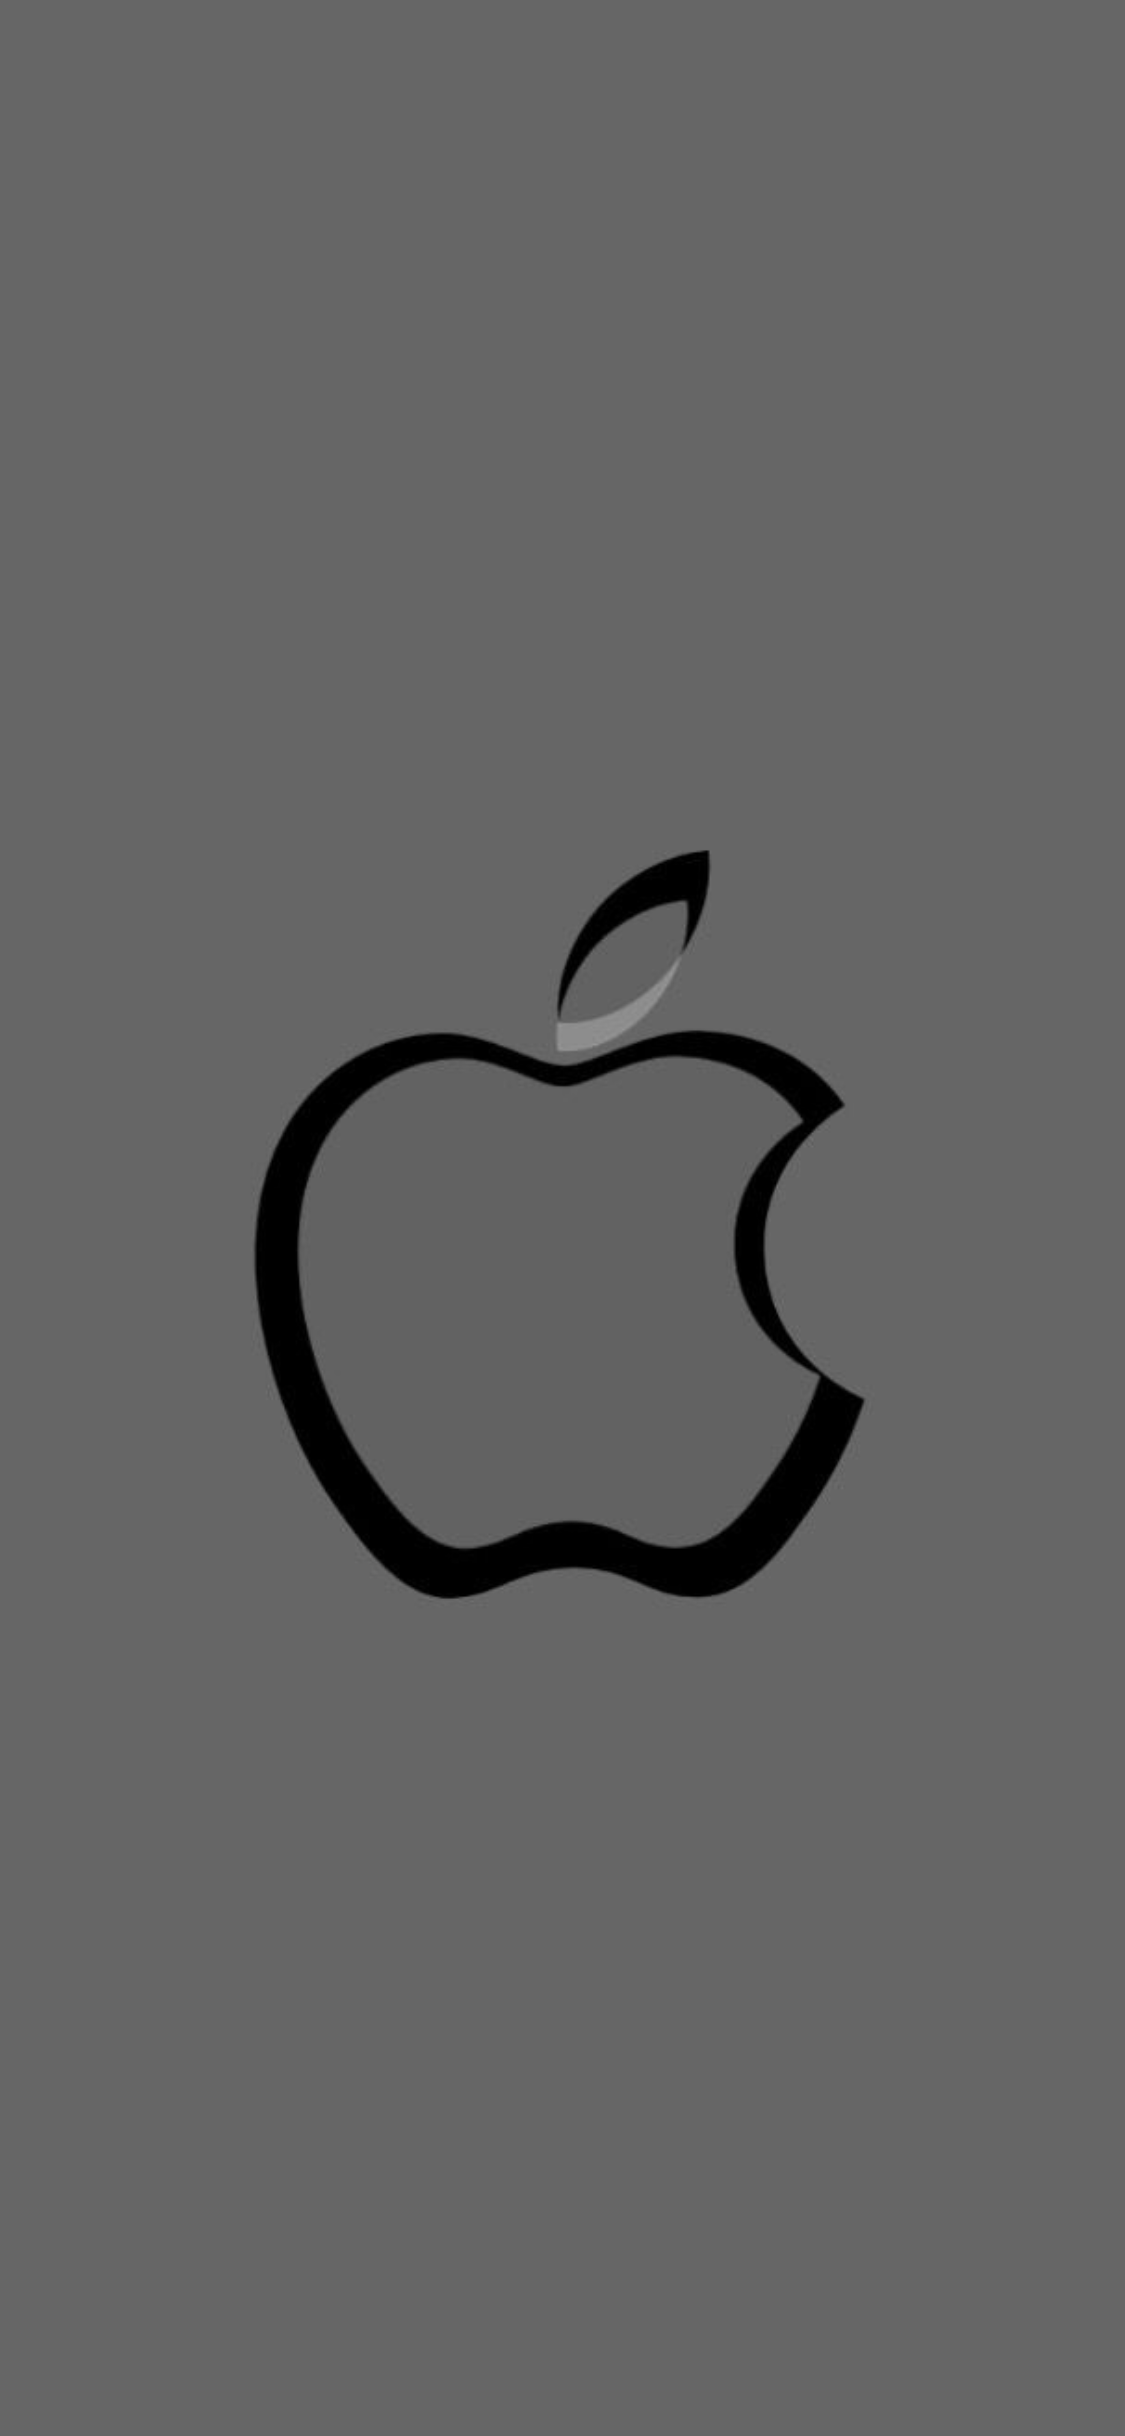 Pin By Privaterayan On Sick Wallpapers Apple Wallpaper Apple